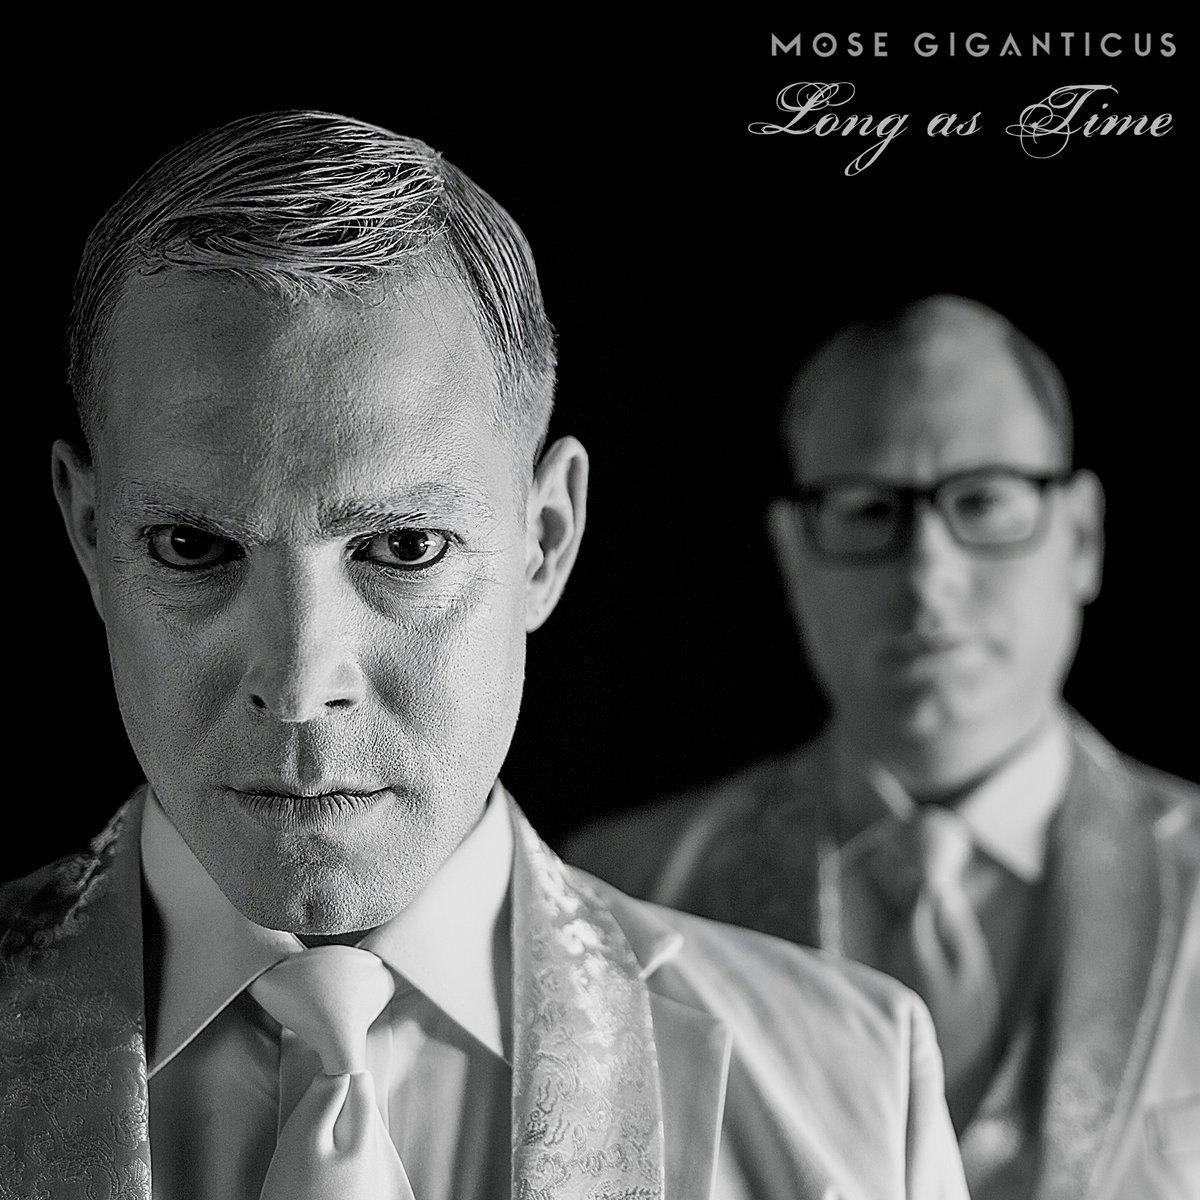 MOSE GIGANTICUS - The Singles Series cover